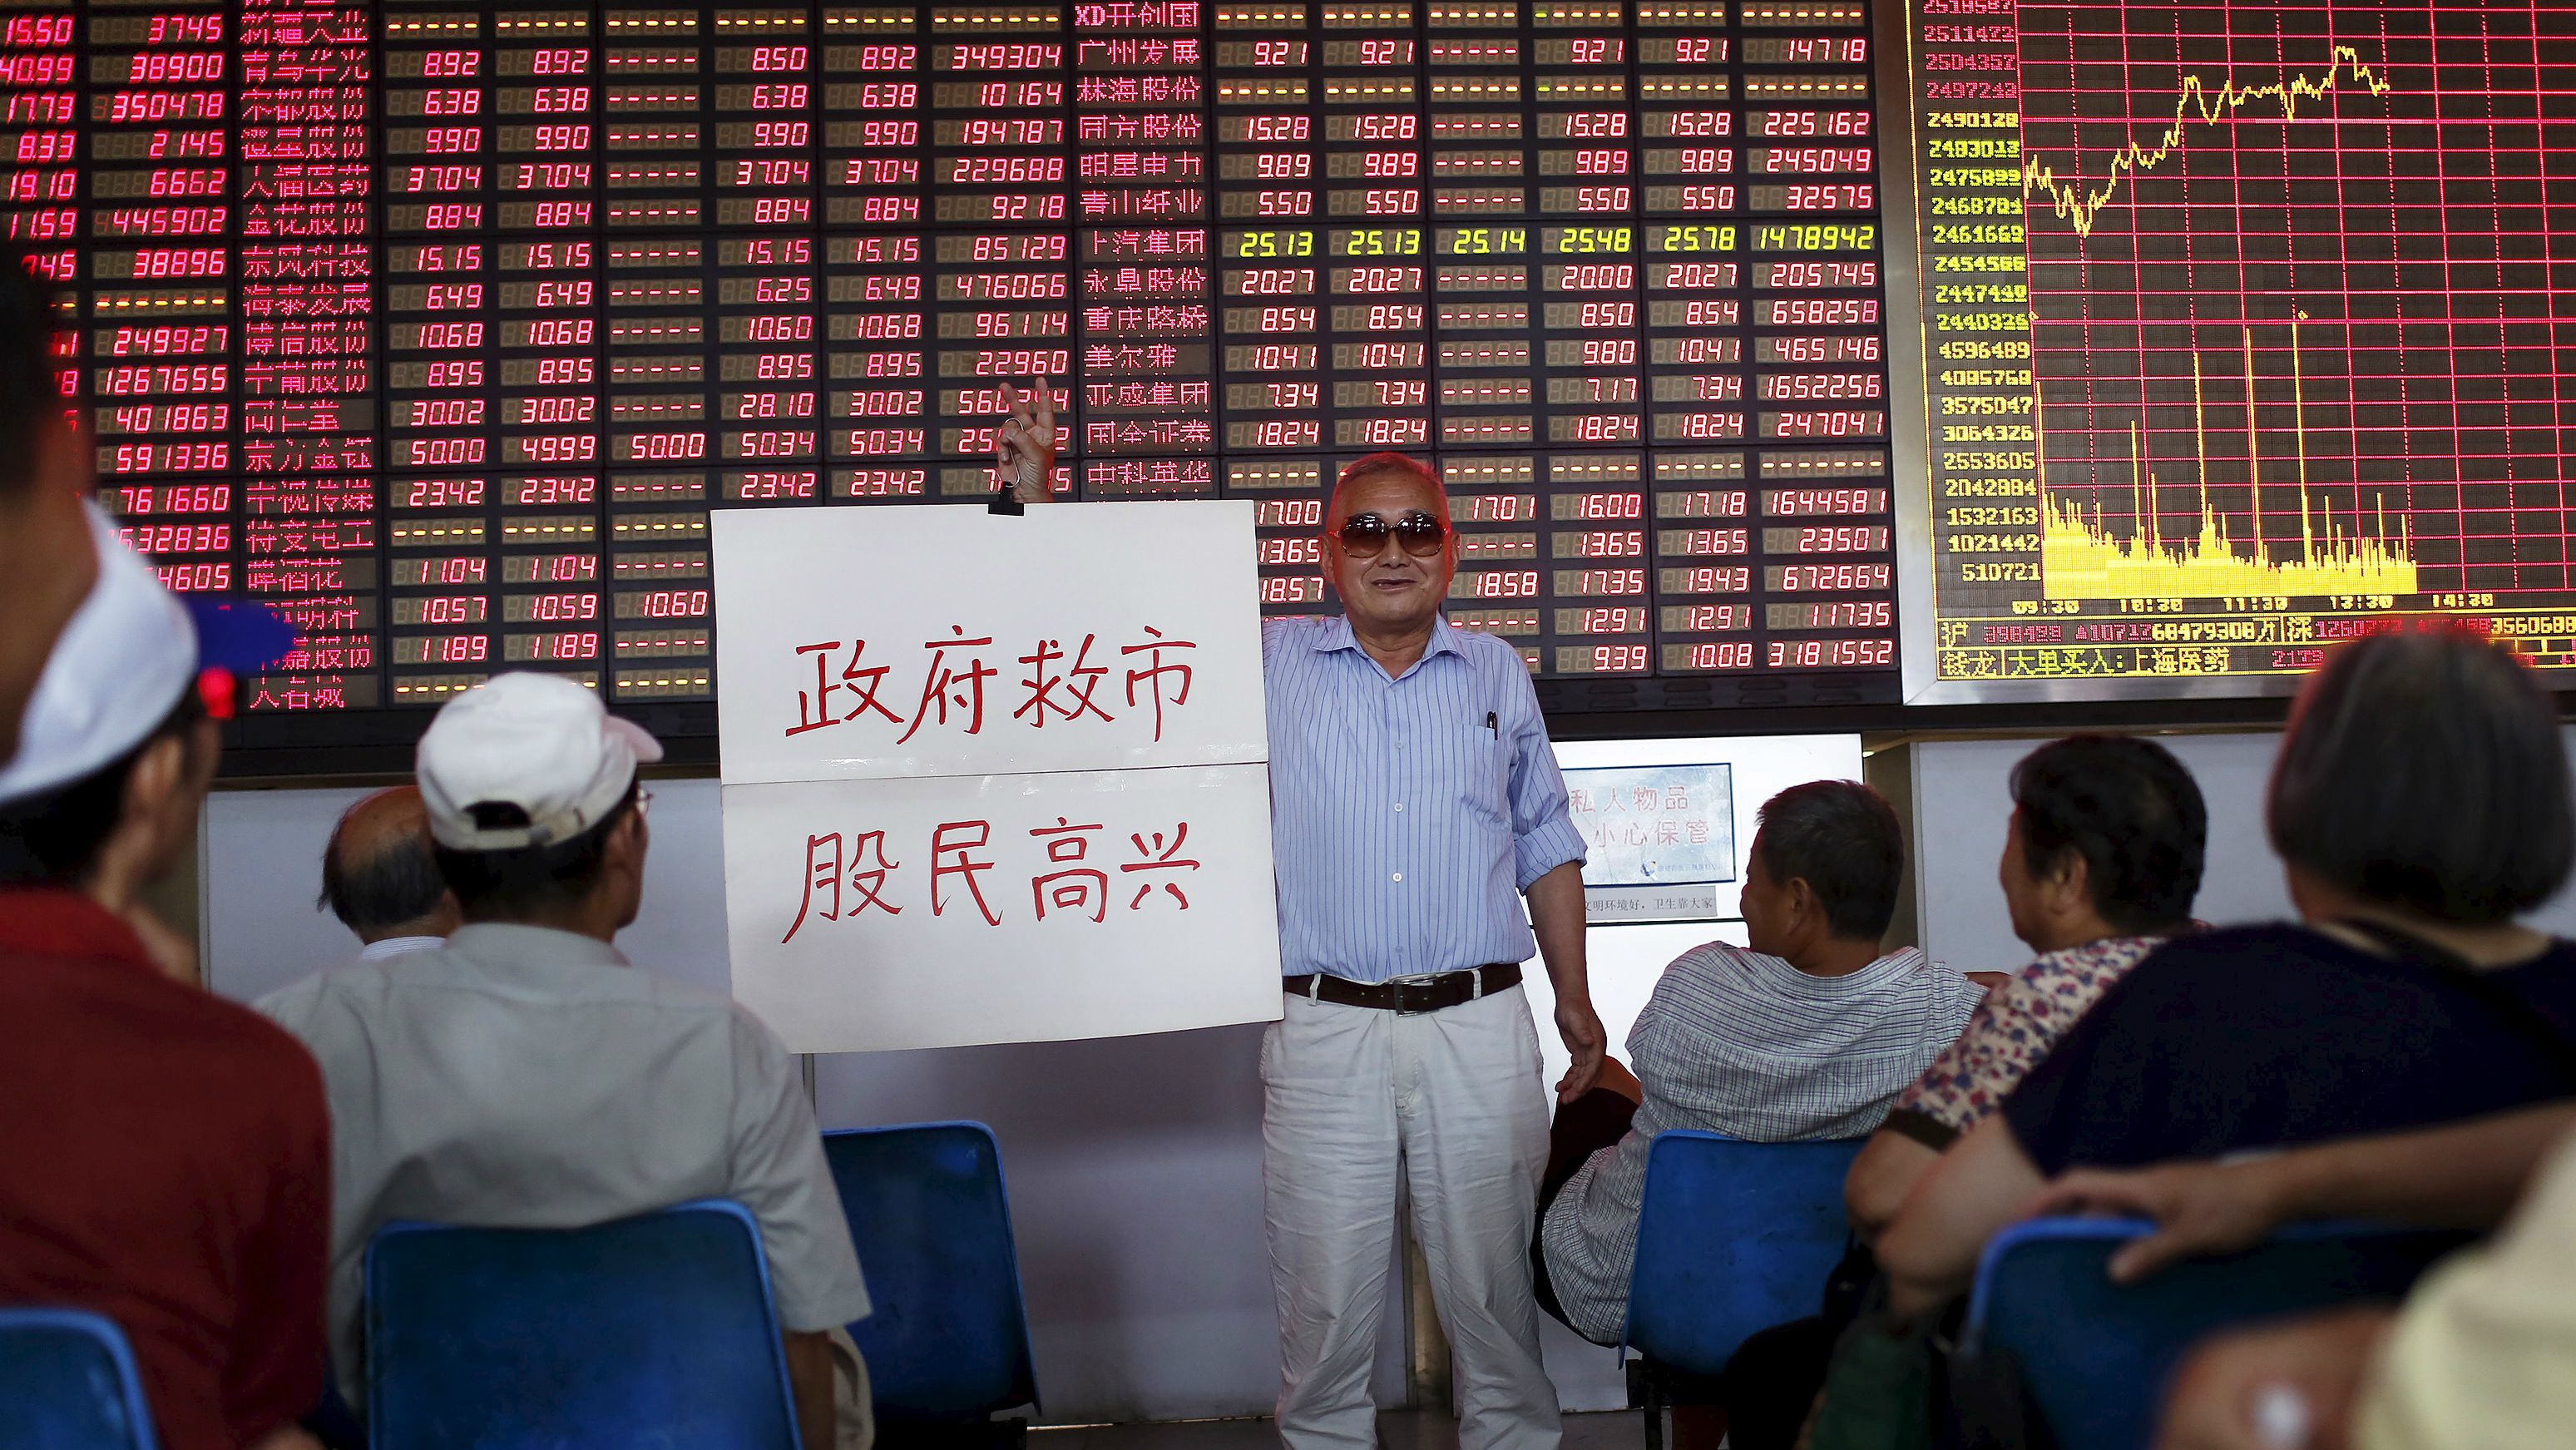 "An investor holds a board showing ""government saves the market so that investors will be happy"" at a brokerage house in Shanghai, China, July 13, 2015. China stocks, led by small caps, extended their recovery for a third day on Monday, raising hopes that measures taken by Beijing to prevent a full-blown market crash have worked. REUTERS/Aly Song"